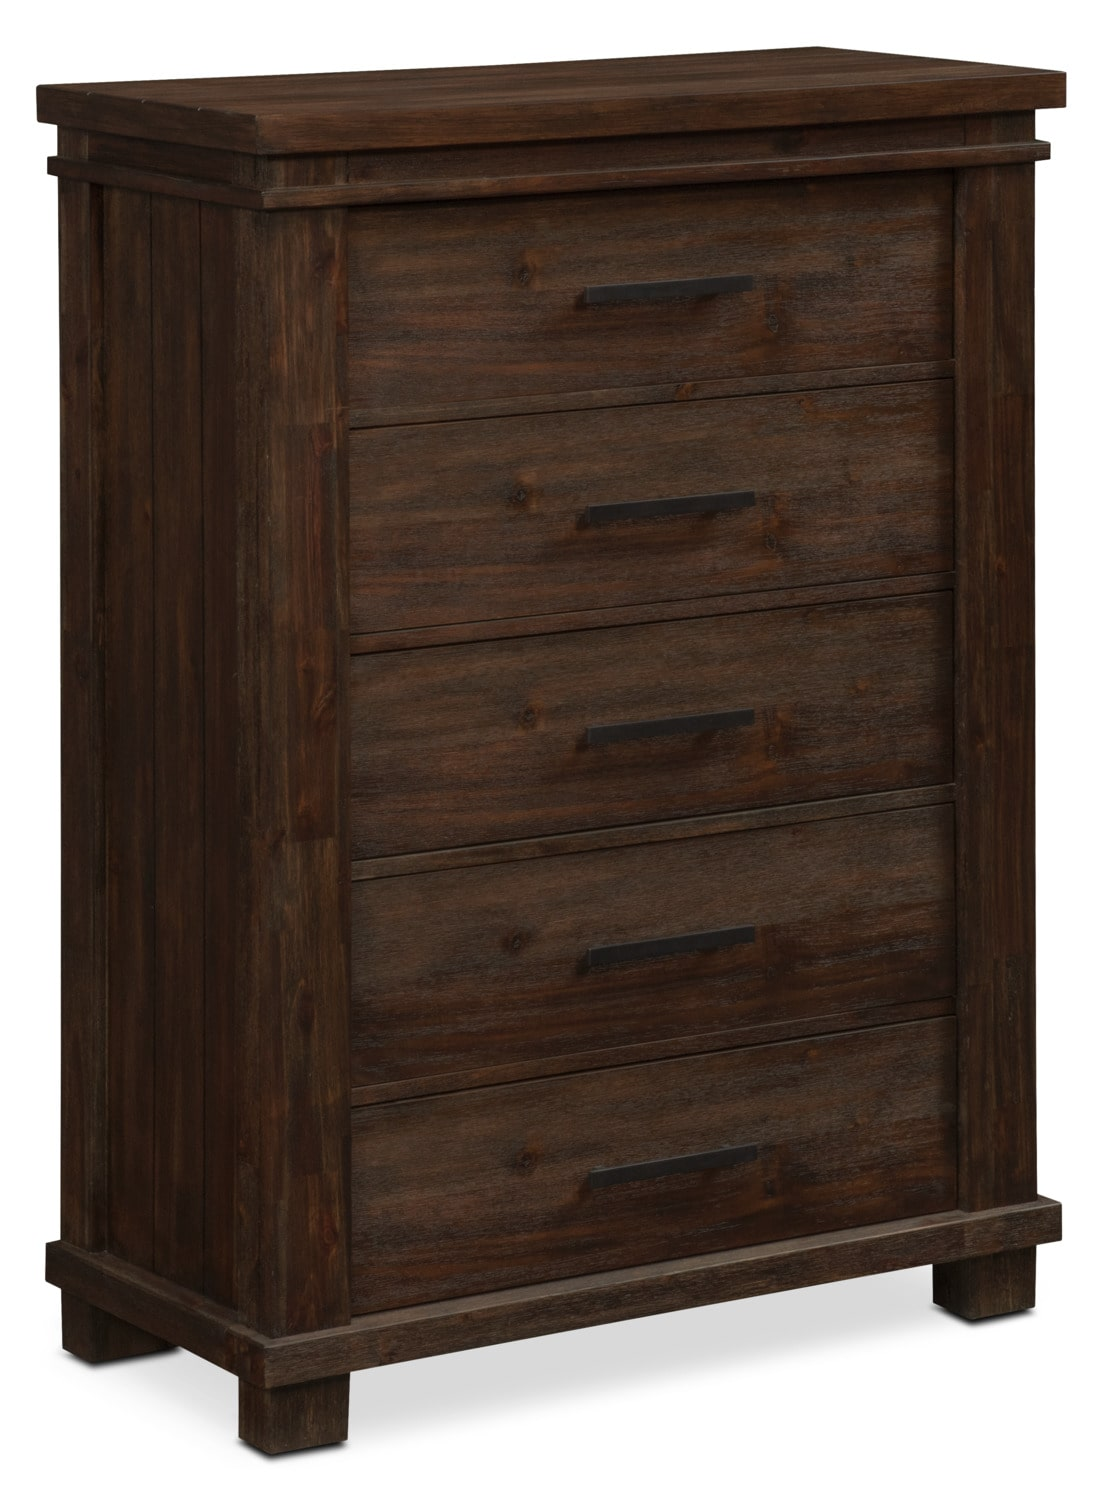 Tribeca Chest - Tobacco